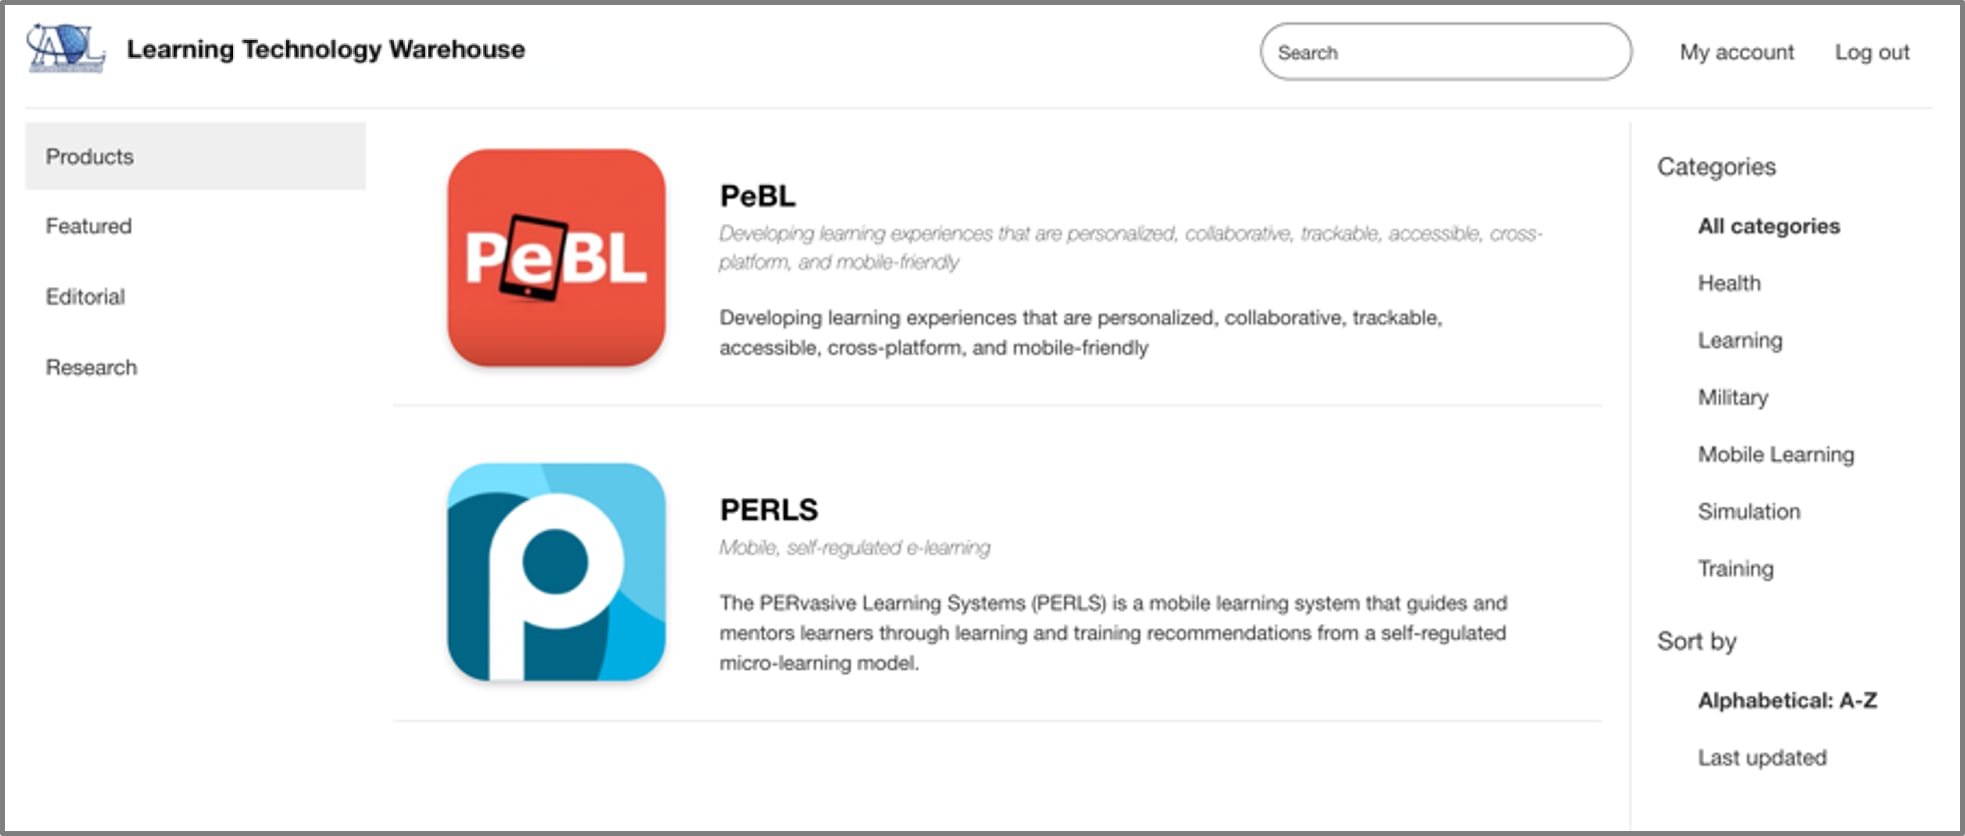 Screenshot of Learning Technology Warehouse showing PeBL and PERLS products